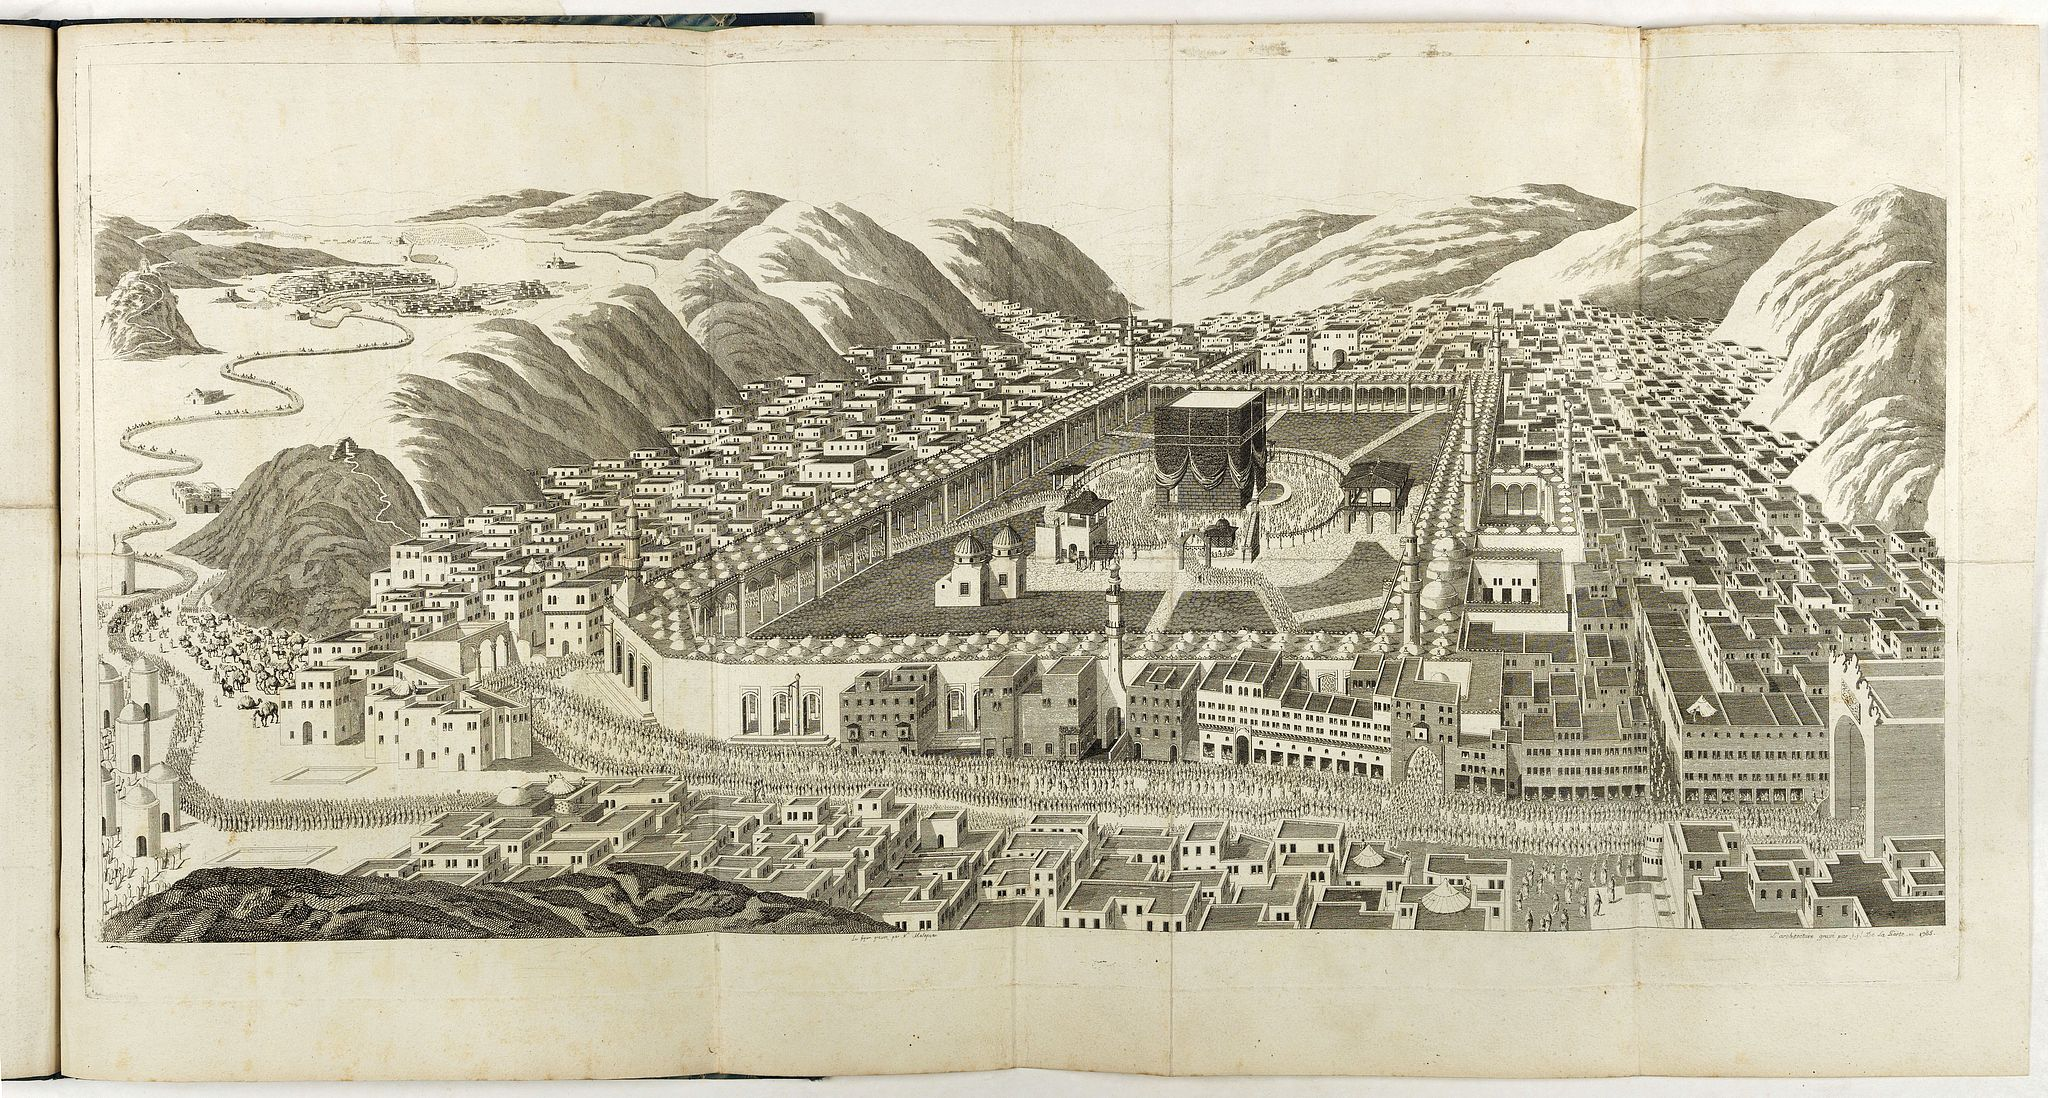 MOURADJA D'OHSSON, Ignace. -  [Tableau Général de l'Empire Ottoman]. 11 plates with the panoramic view of Mecca.